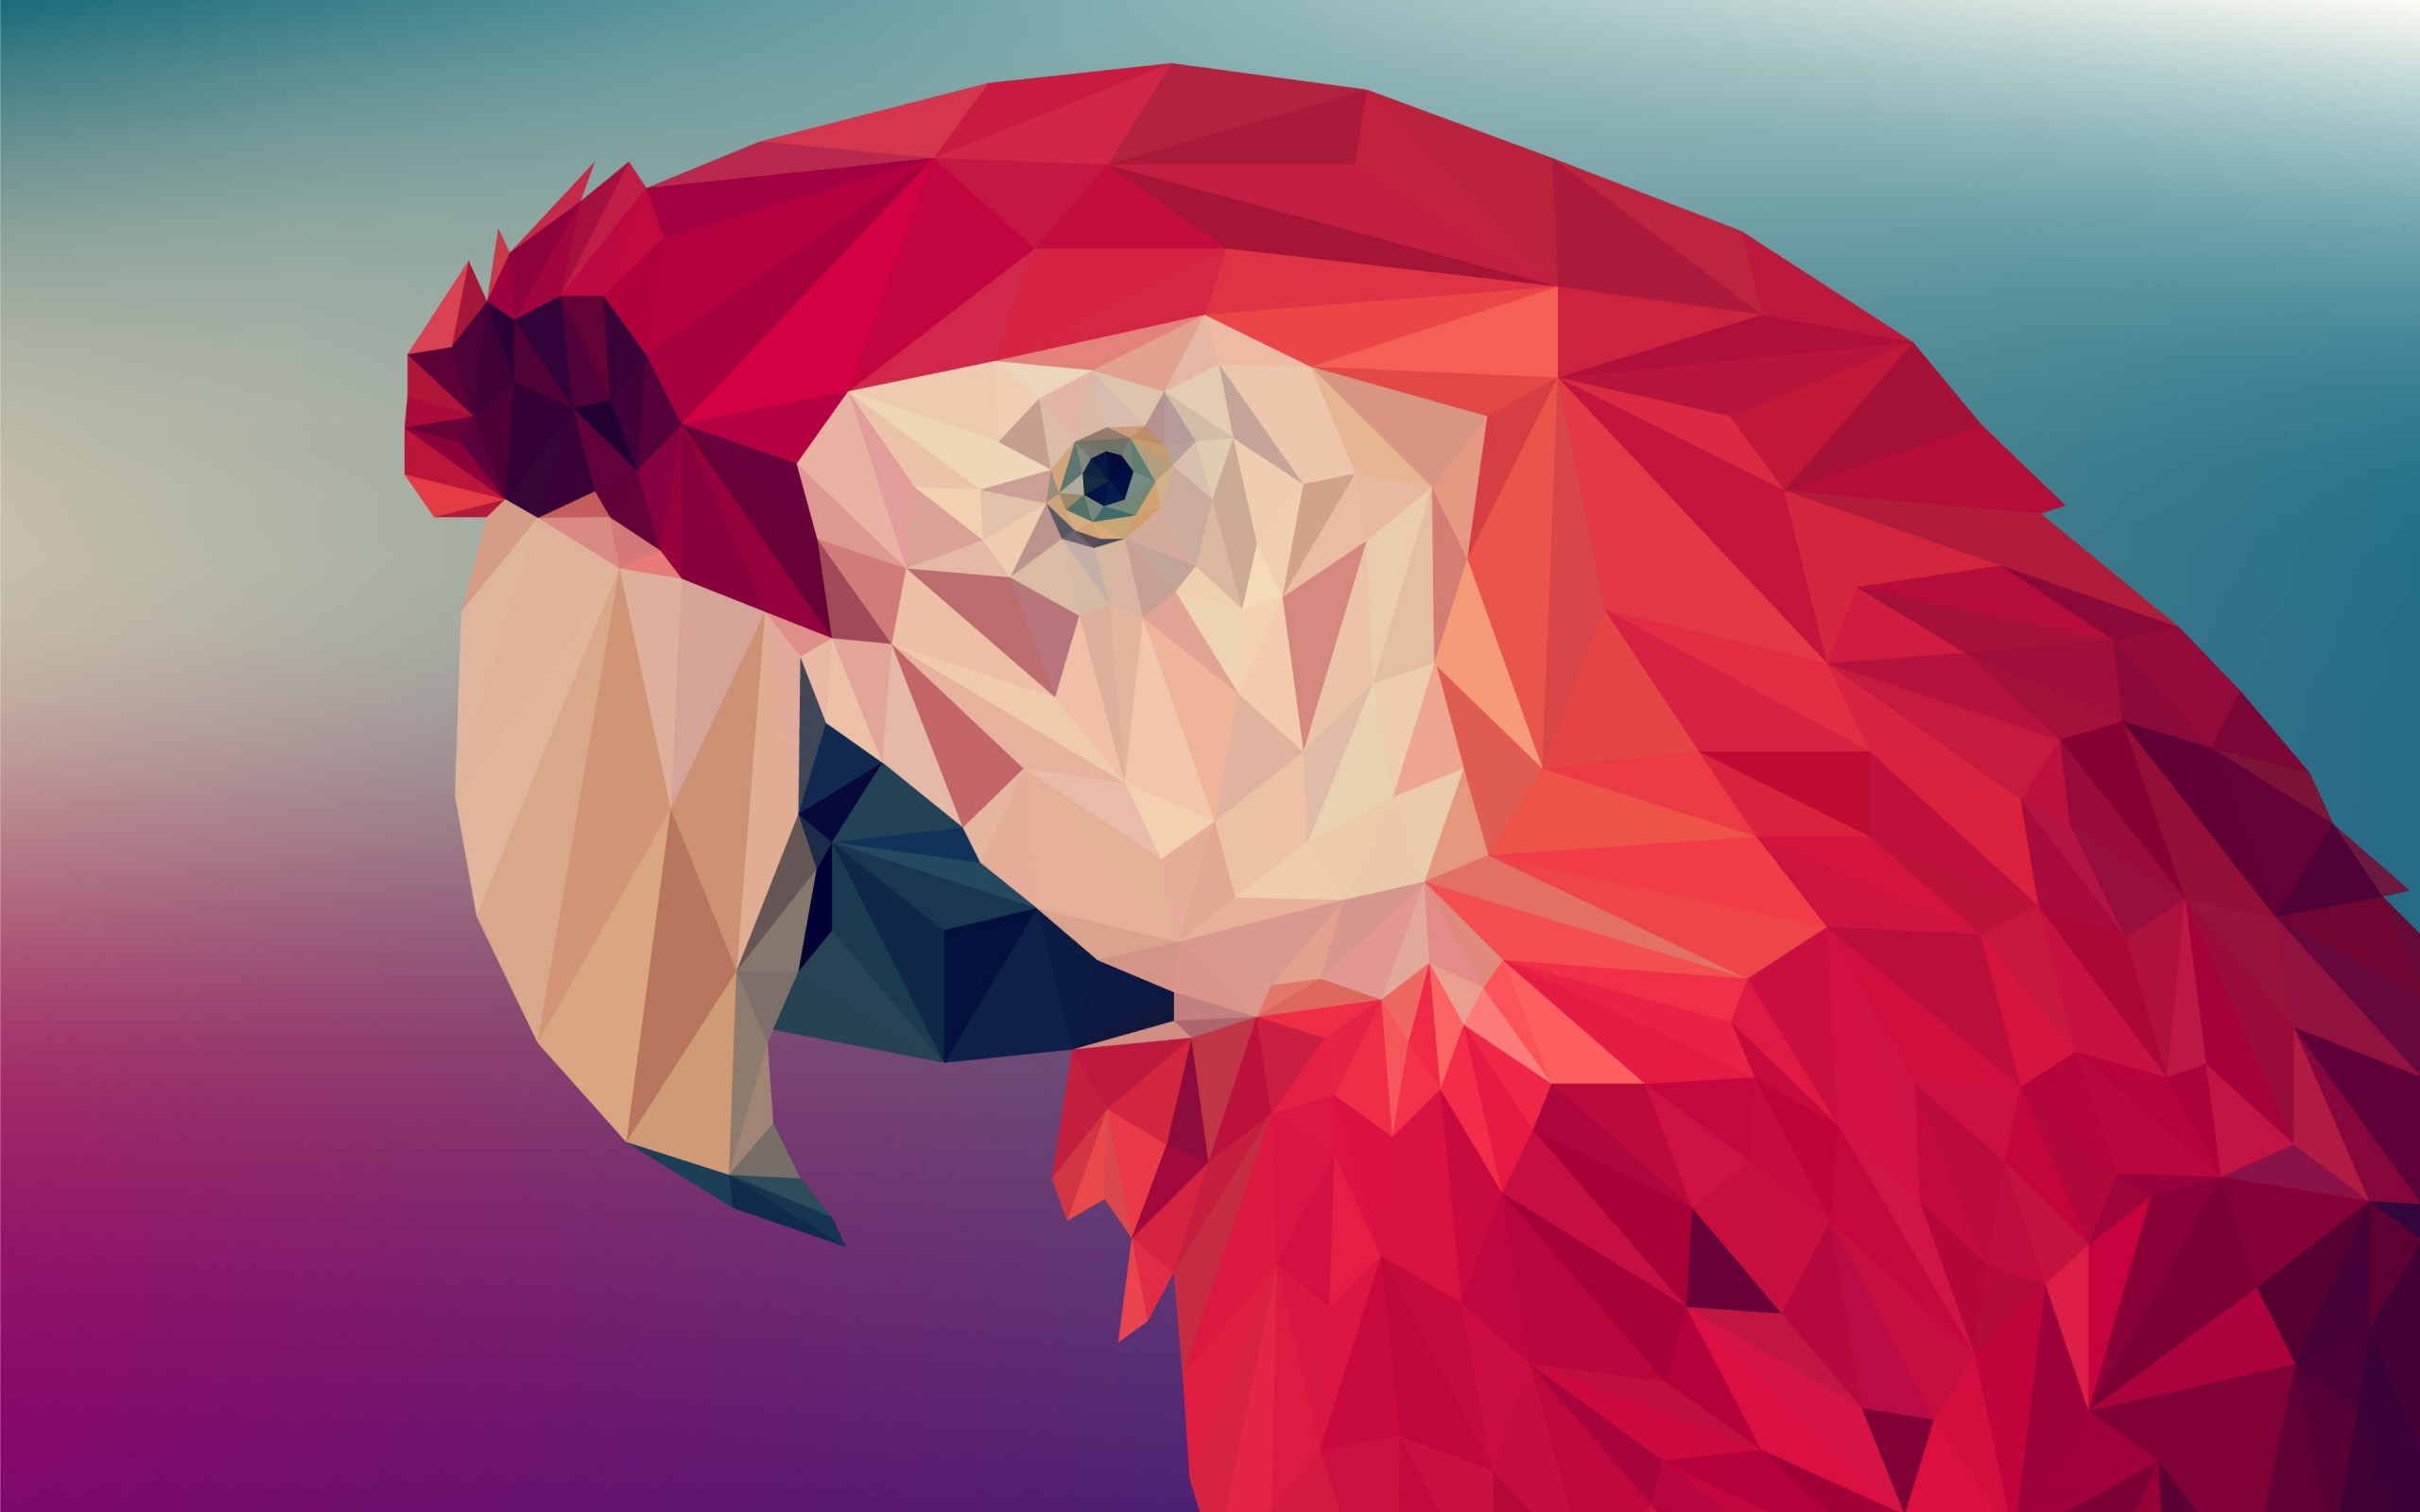 Low poly art: Red parrot wallpaper 2560x1600